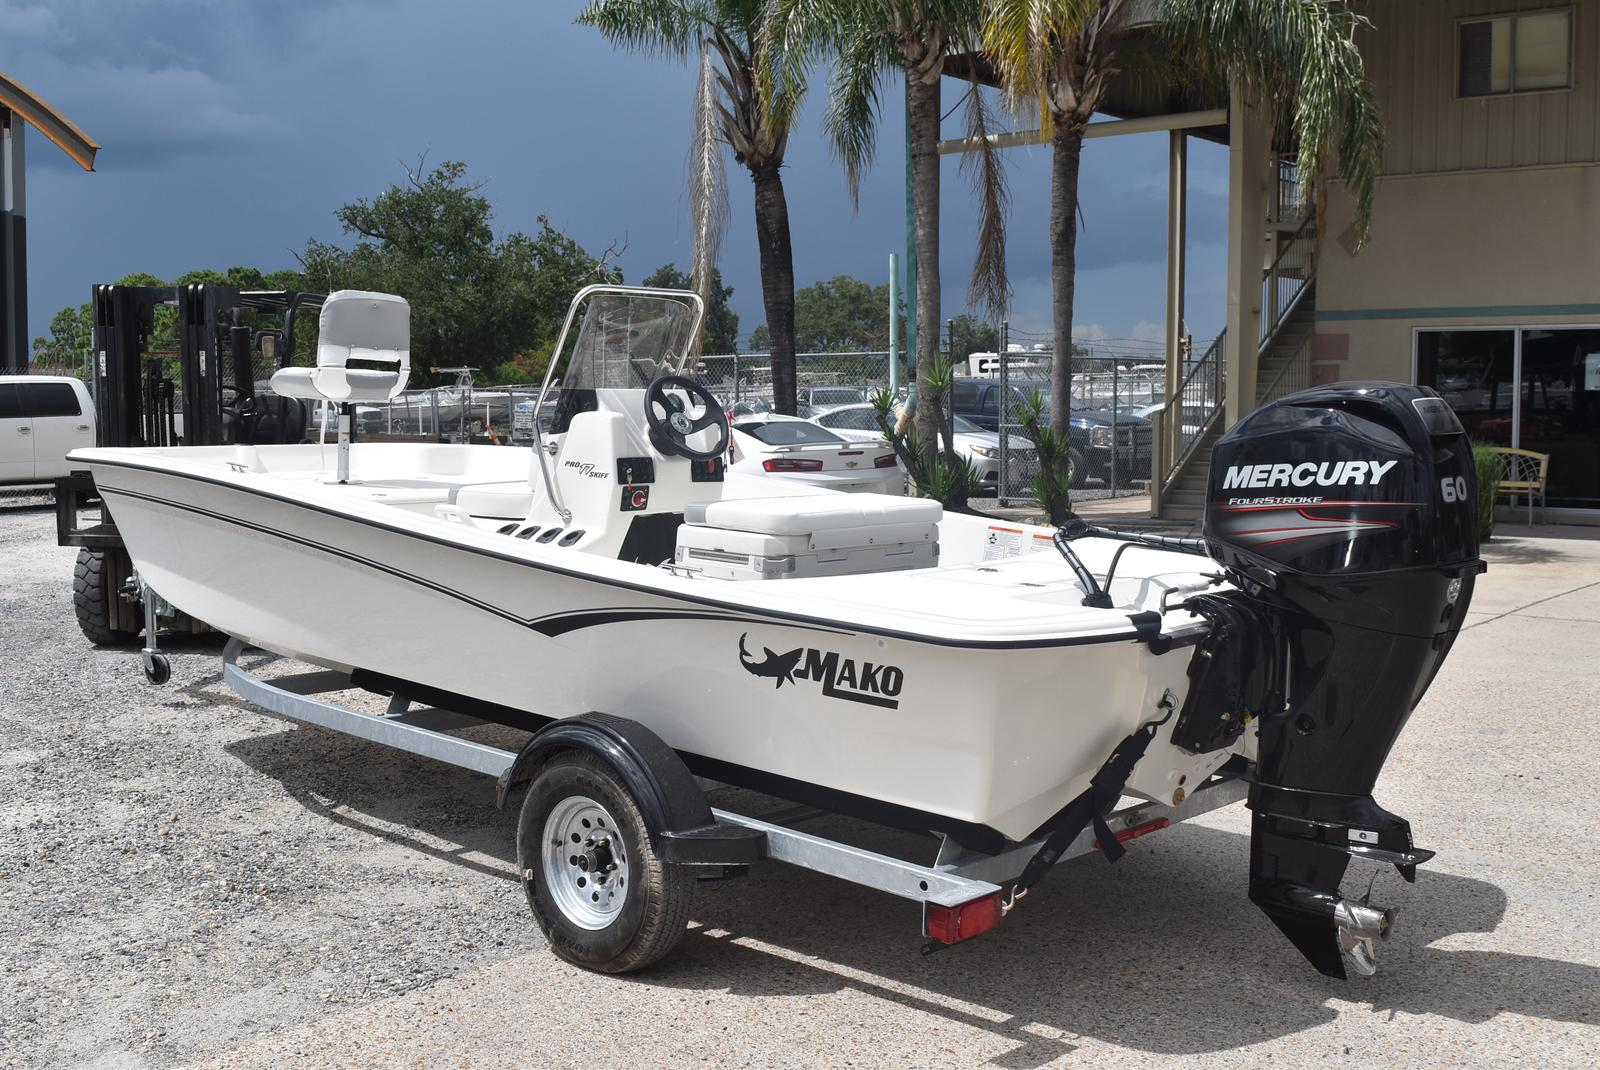 2020 Mako boat for sale, model of the boat is Pro Skiff 17, 75 ELPT & Image # 178 of 702